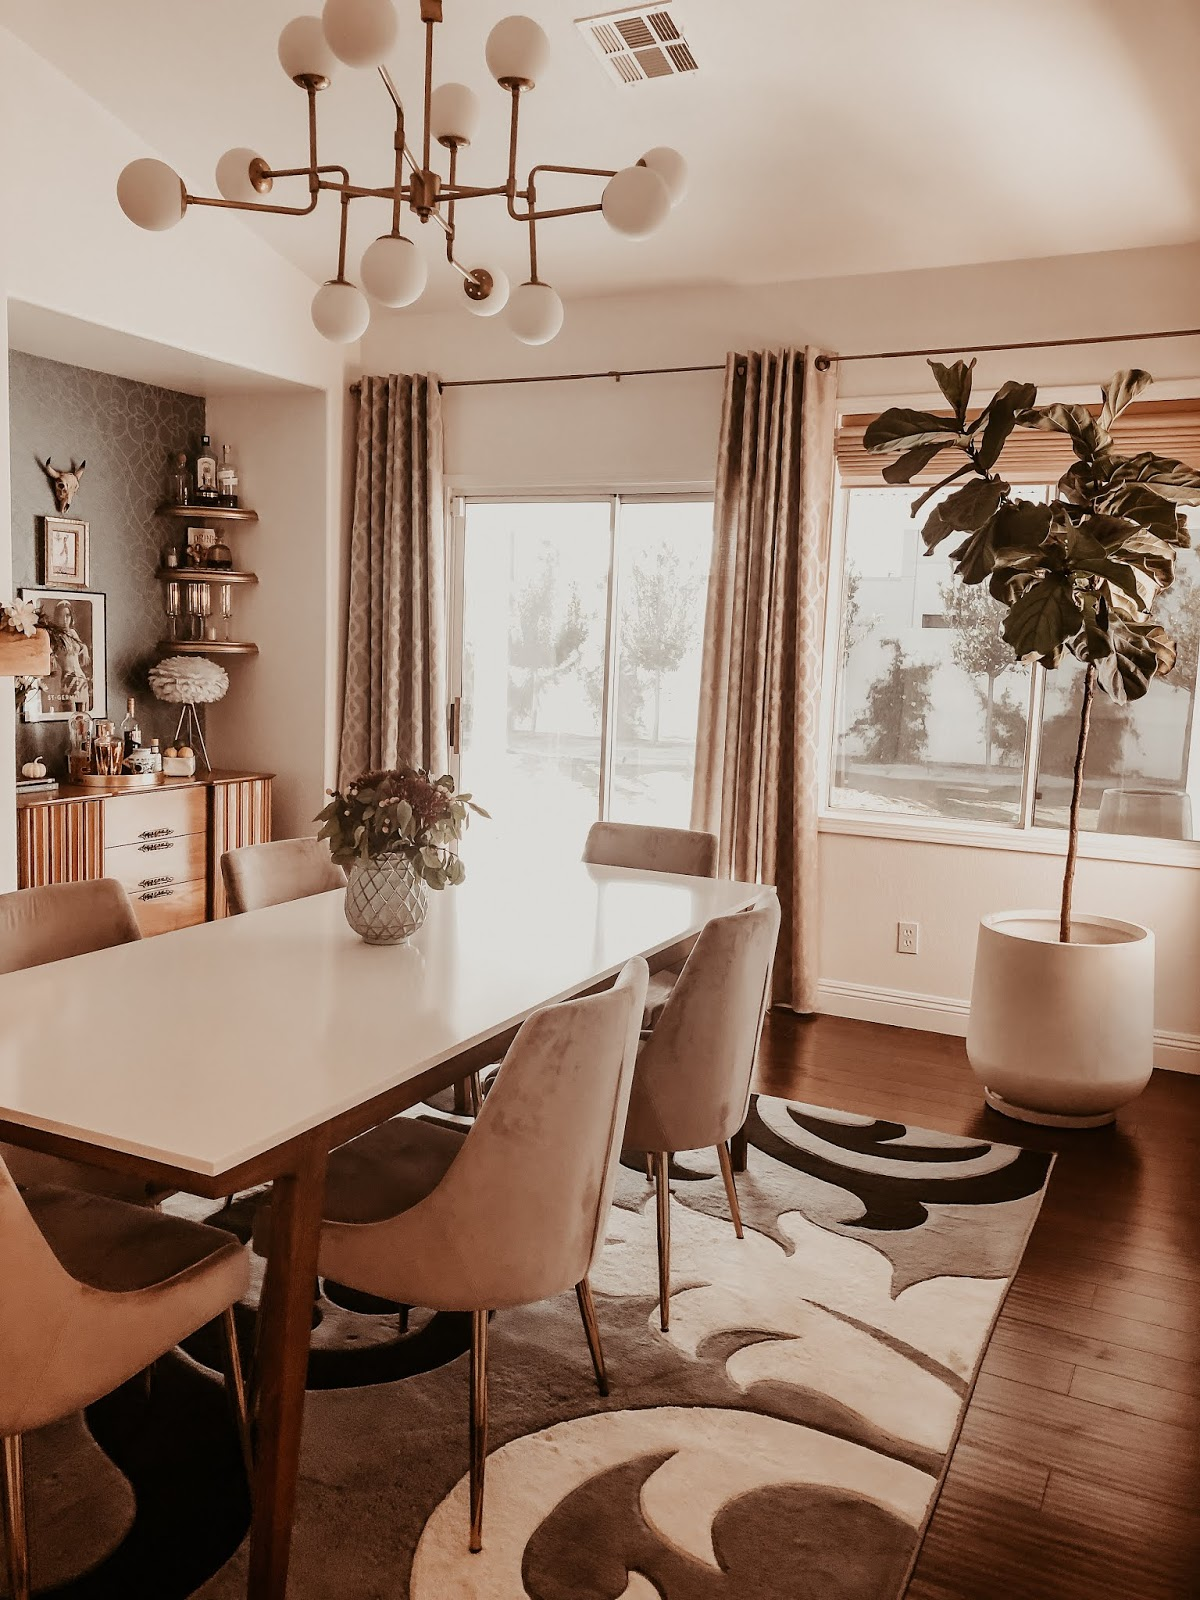 dining-room-makeover-reveal-before-and-after-ideas-goals